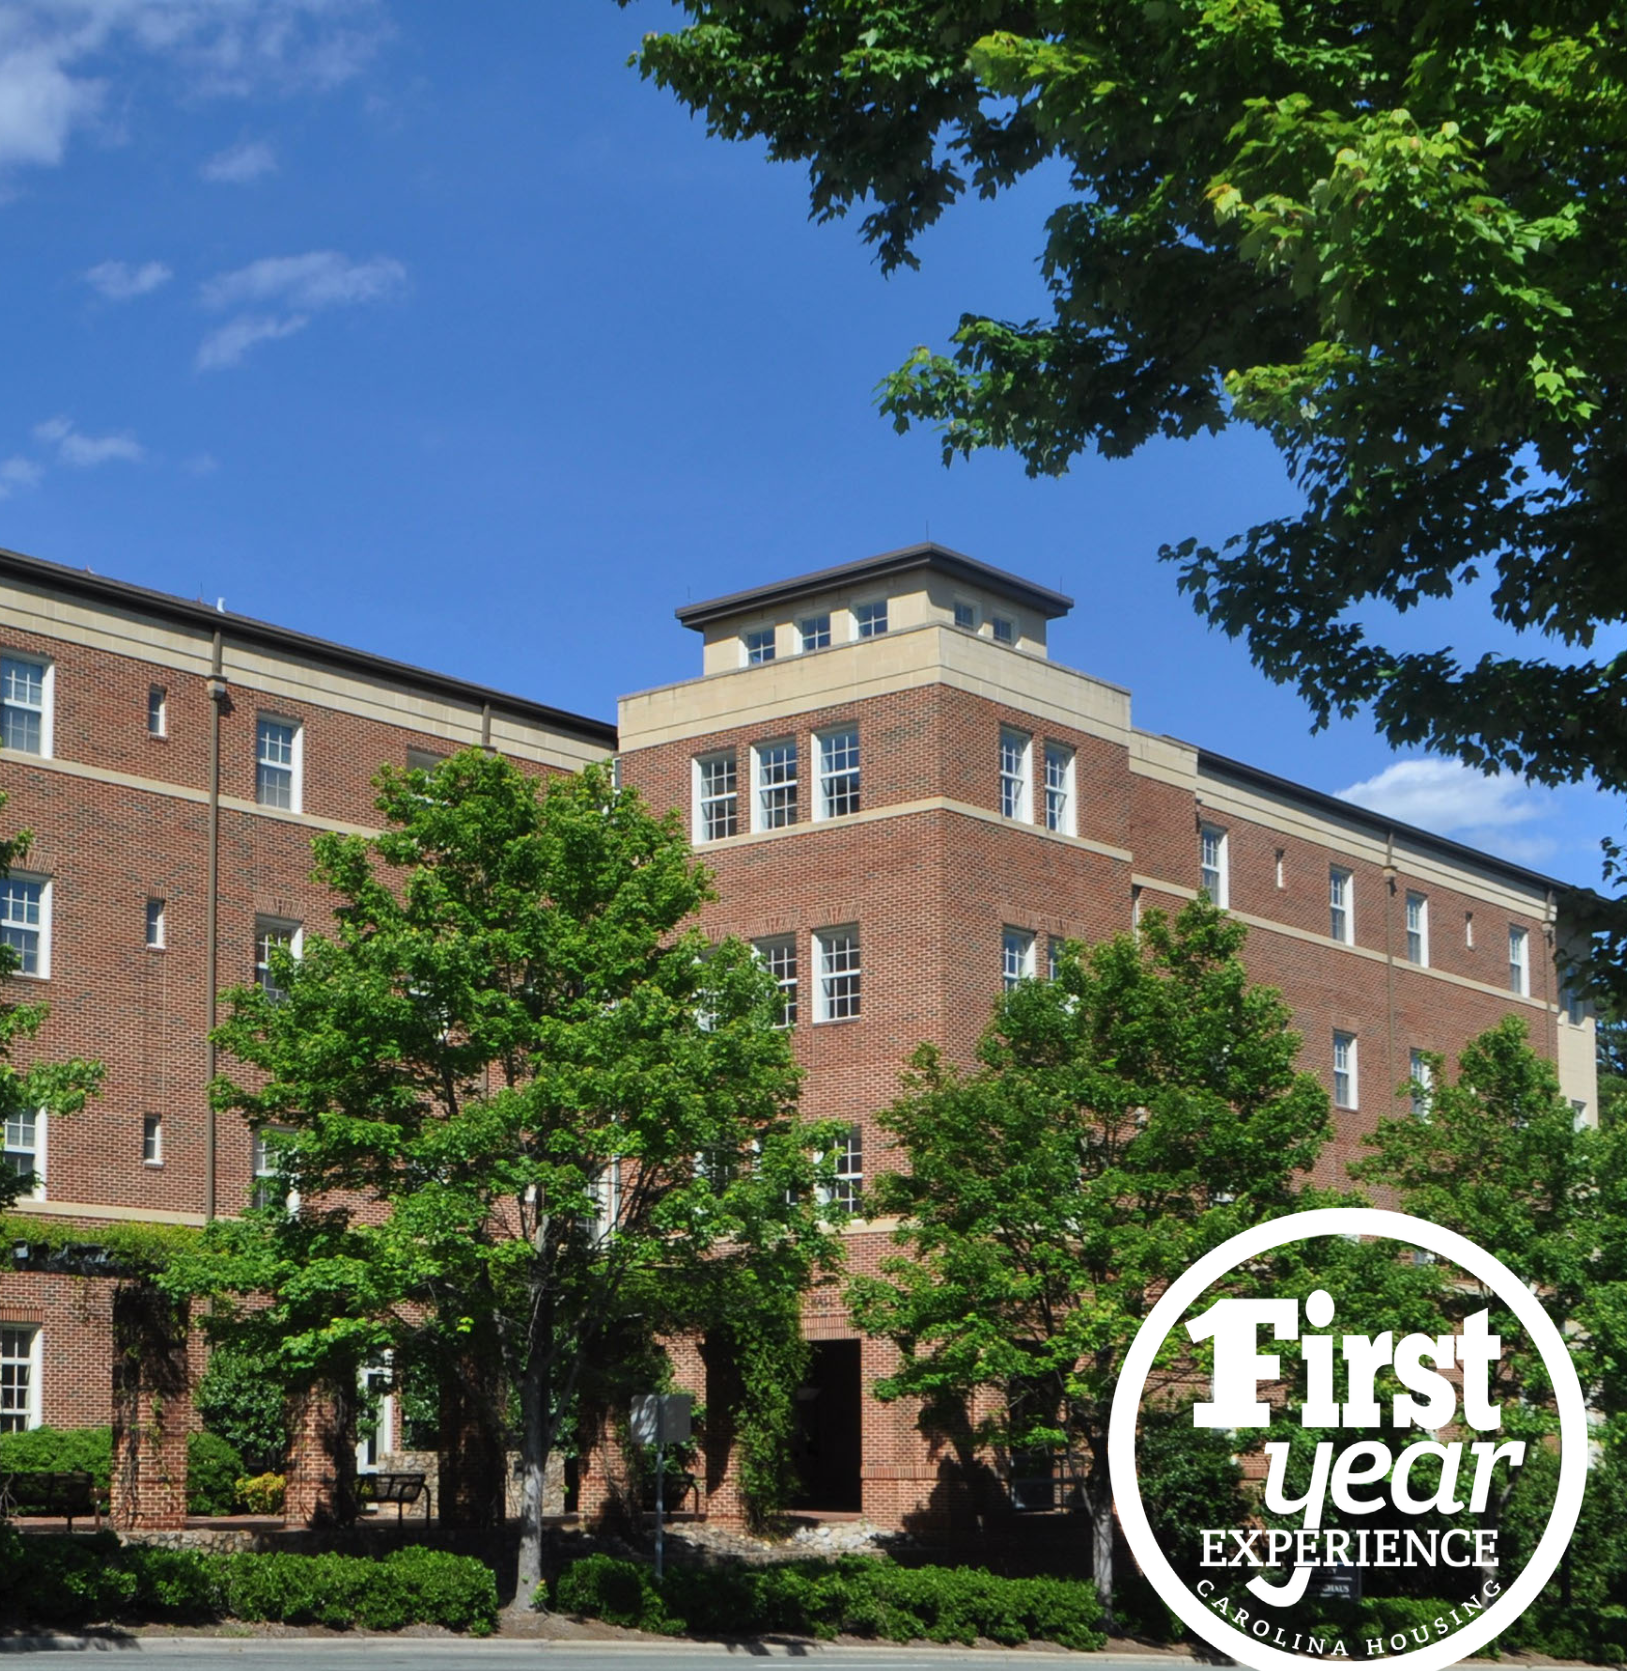 Koury residence hall with the First Year Experience logo in the right corner.